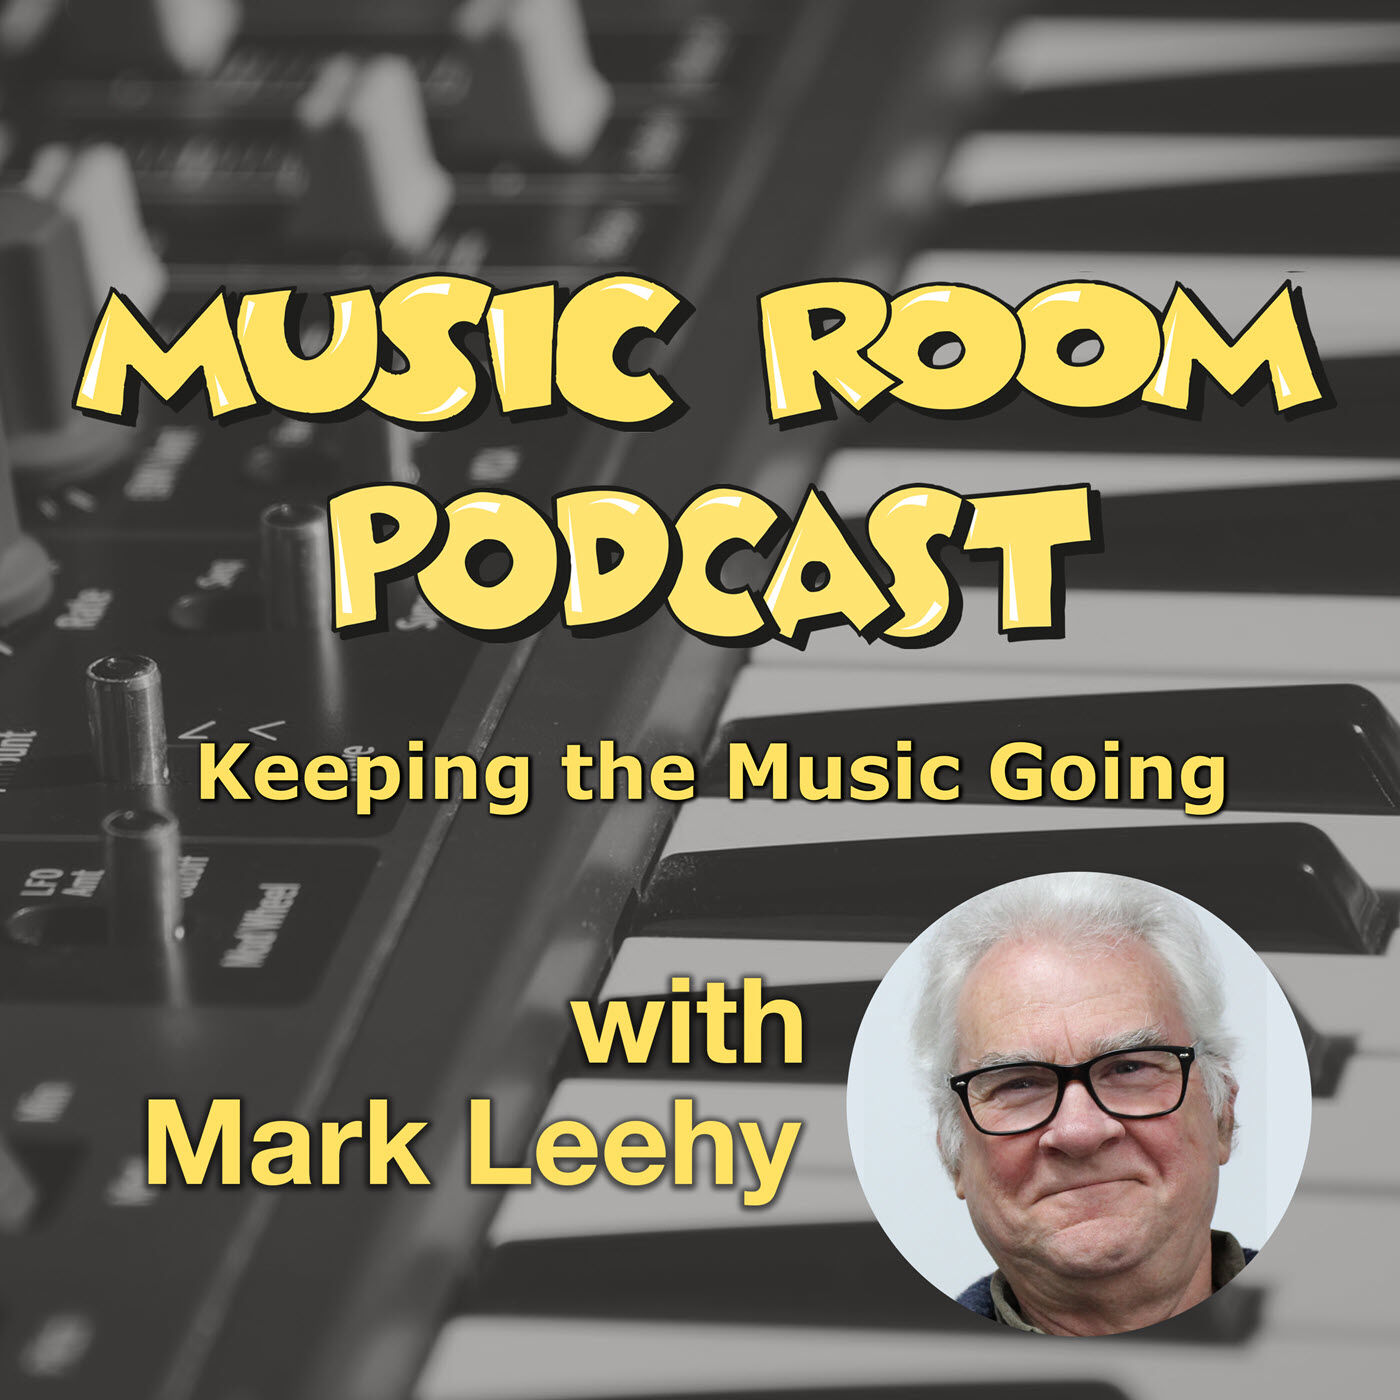 Music Room Podcast